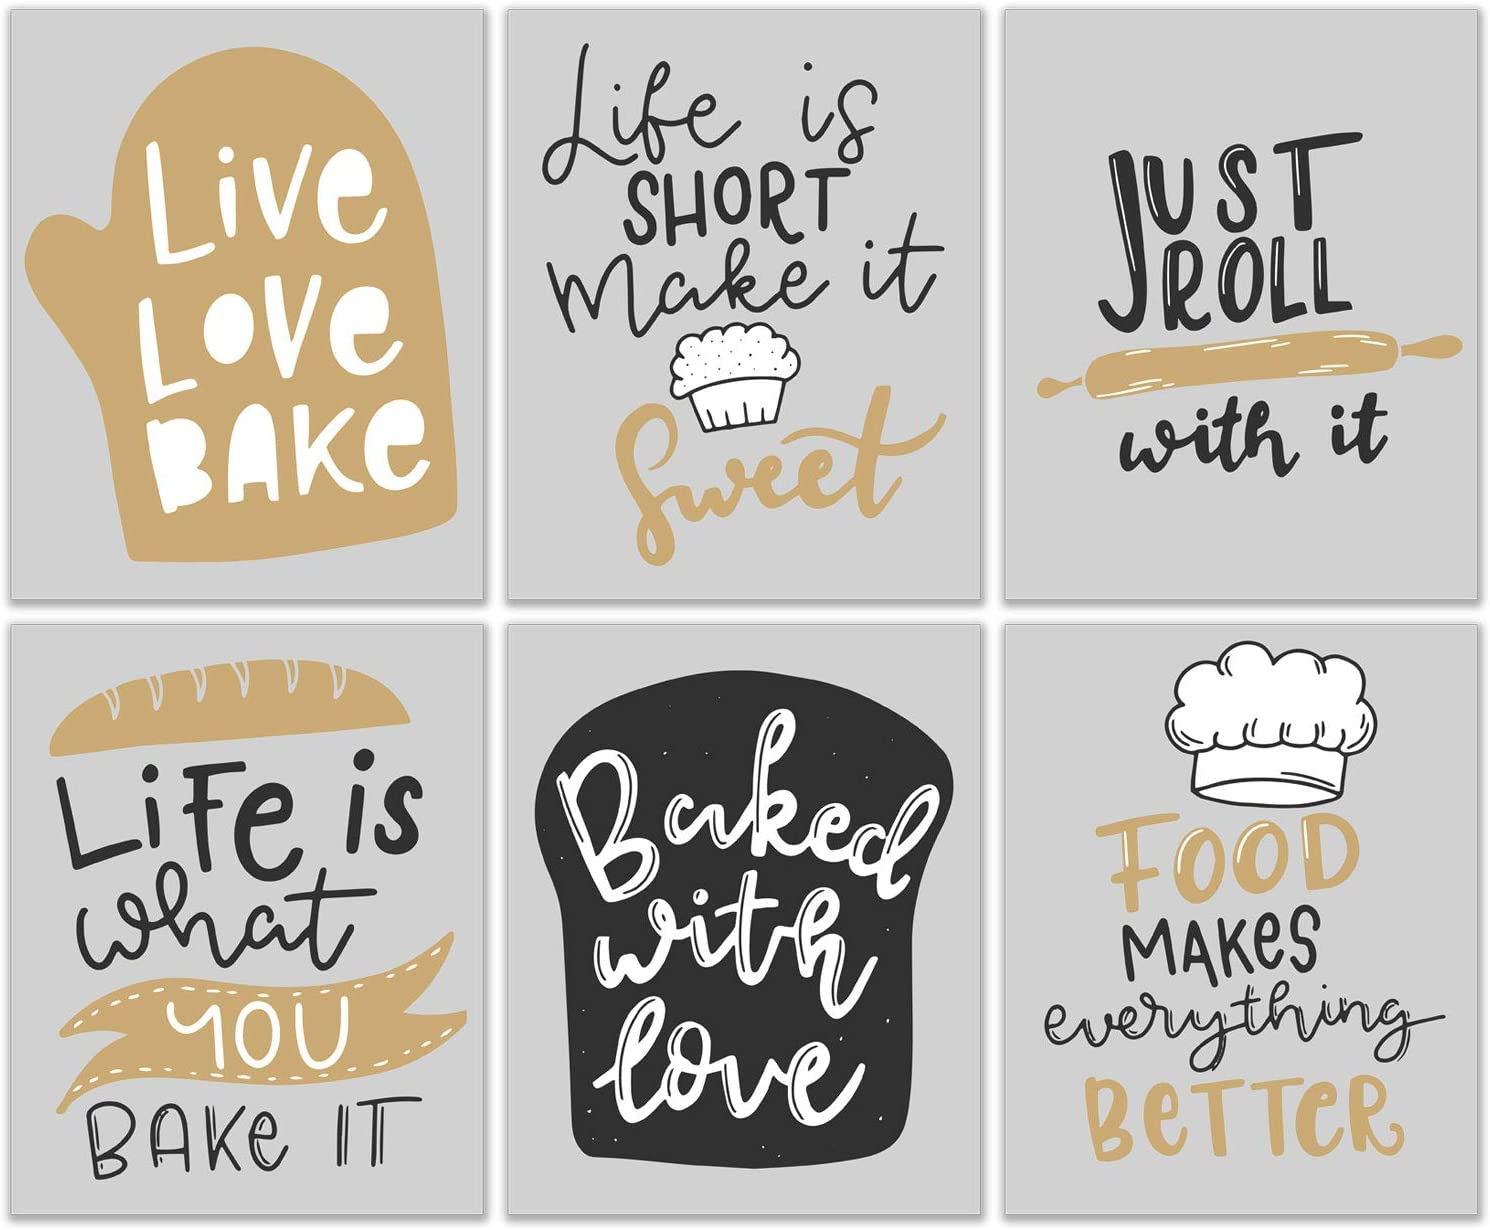 Fun Baking Puns Quotes and Sayings Artwork - Trendy Modern and Aesthetic Grey Black Gold & White Wall Decor for Kitchen - Set of 6 (8x10 Inch) Live Love Bake - Food Makes Everything Better